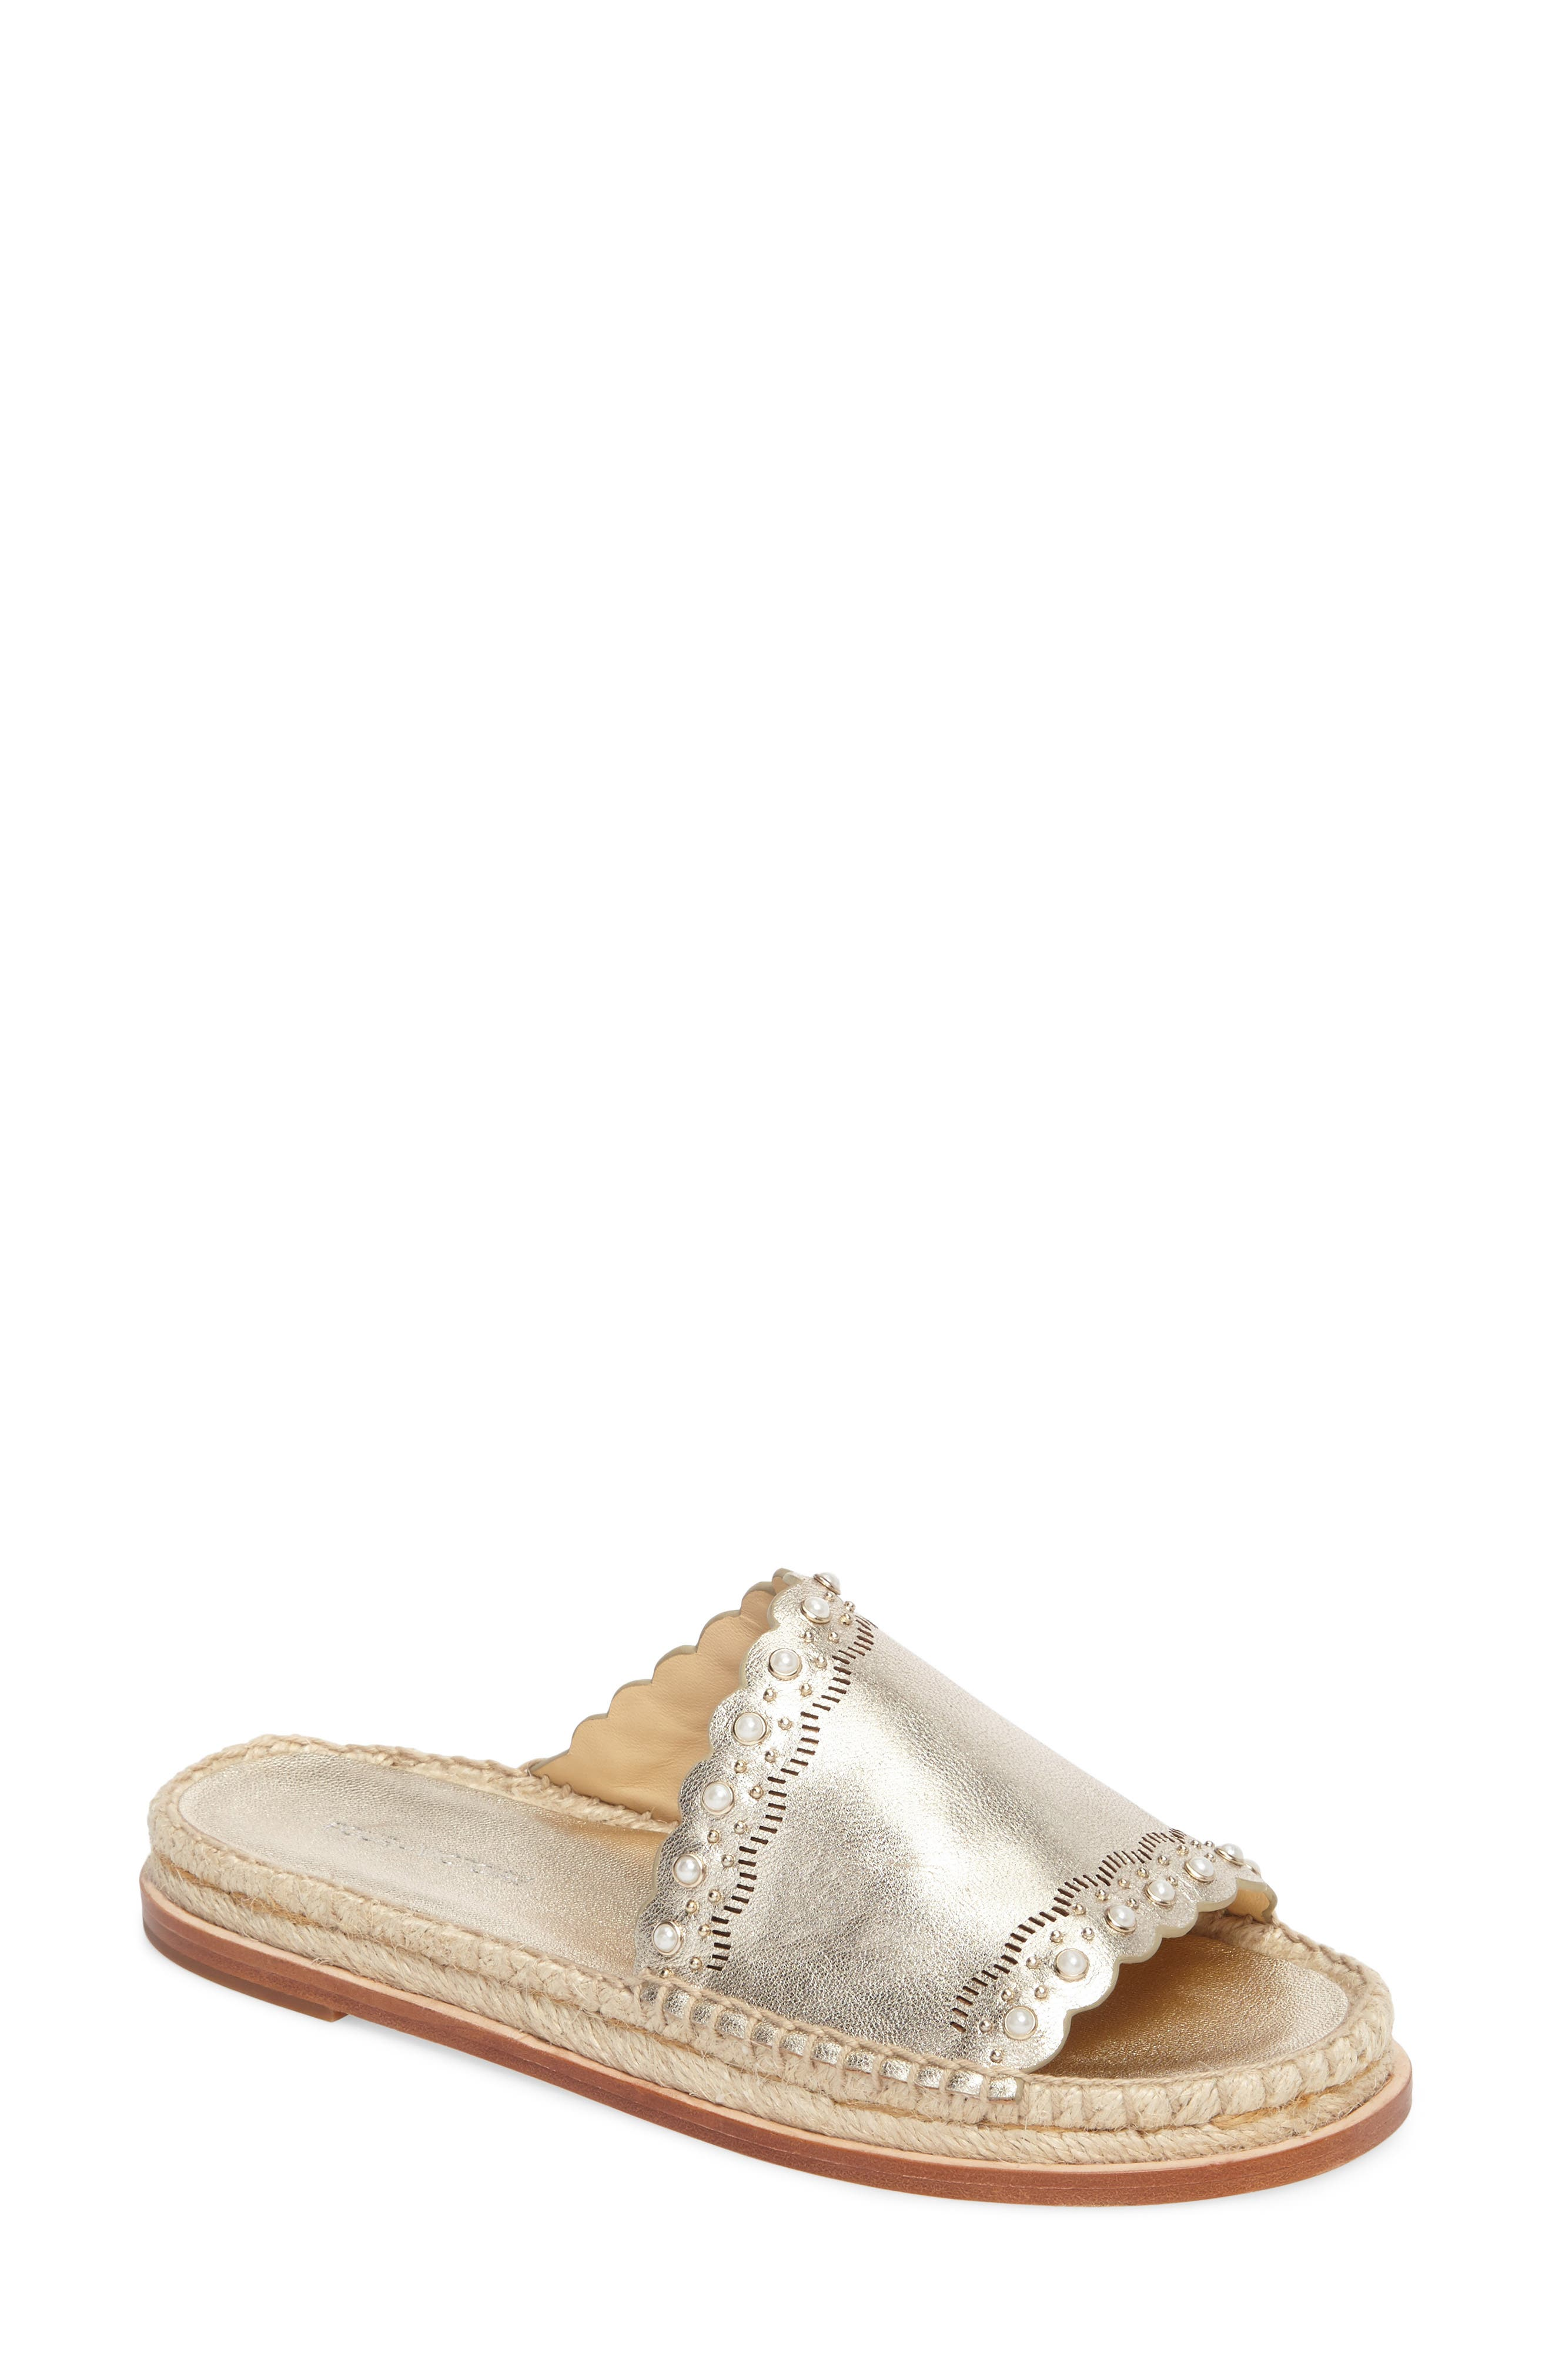 Women's Pia Slide Sandal